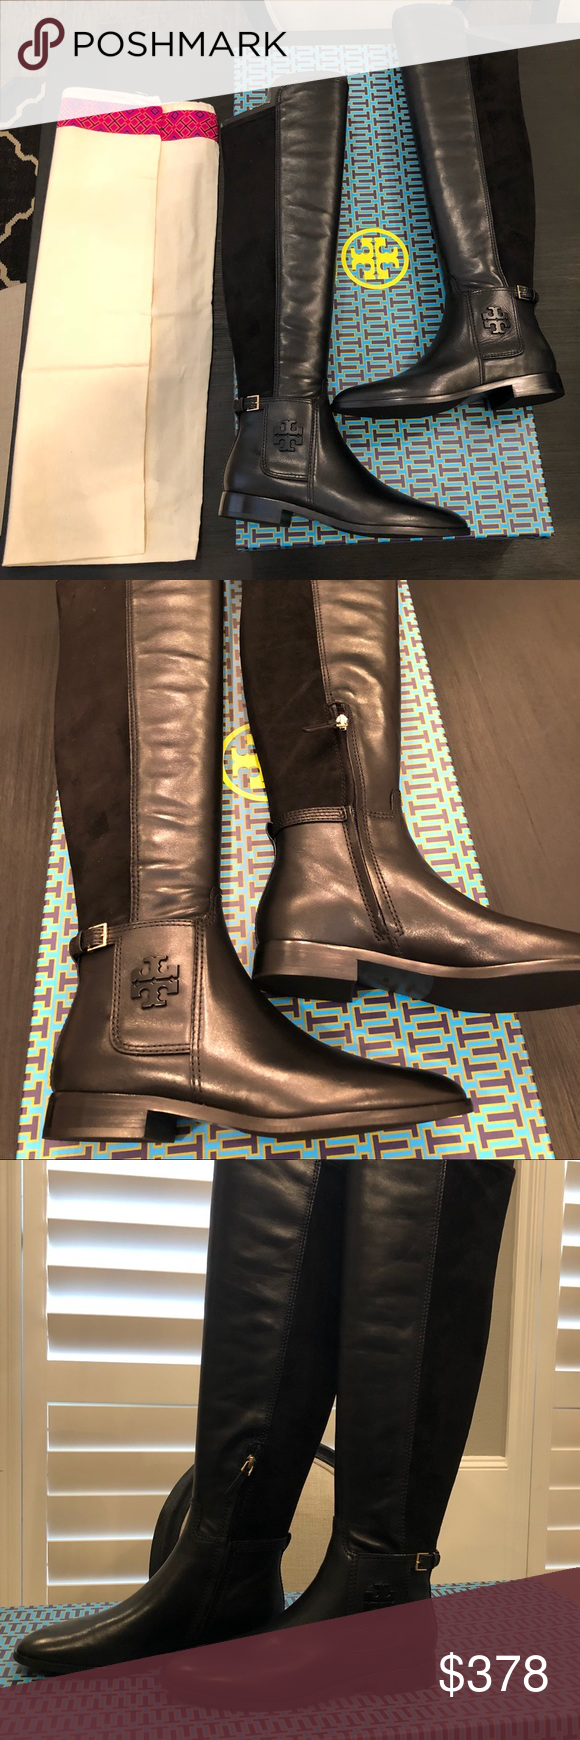 716400acbb7 Tory Burch Over the Knee Wyatt Boots Sz.8.5 Tory Burch WYATT Over the knee  Leather Riding Flat Boots BRAND NEW